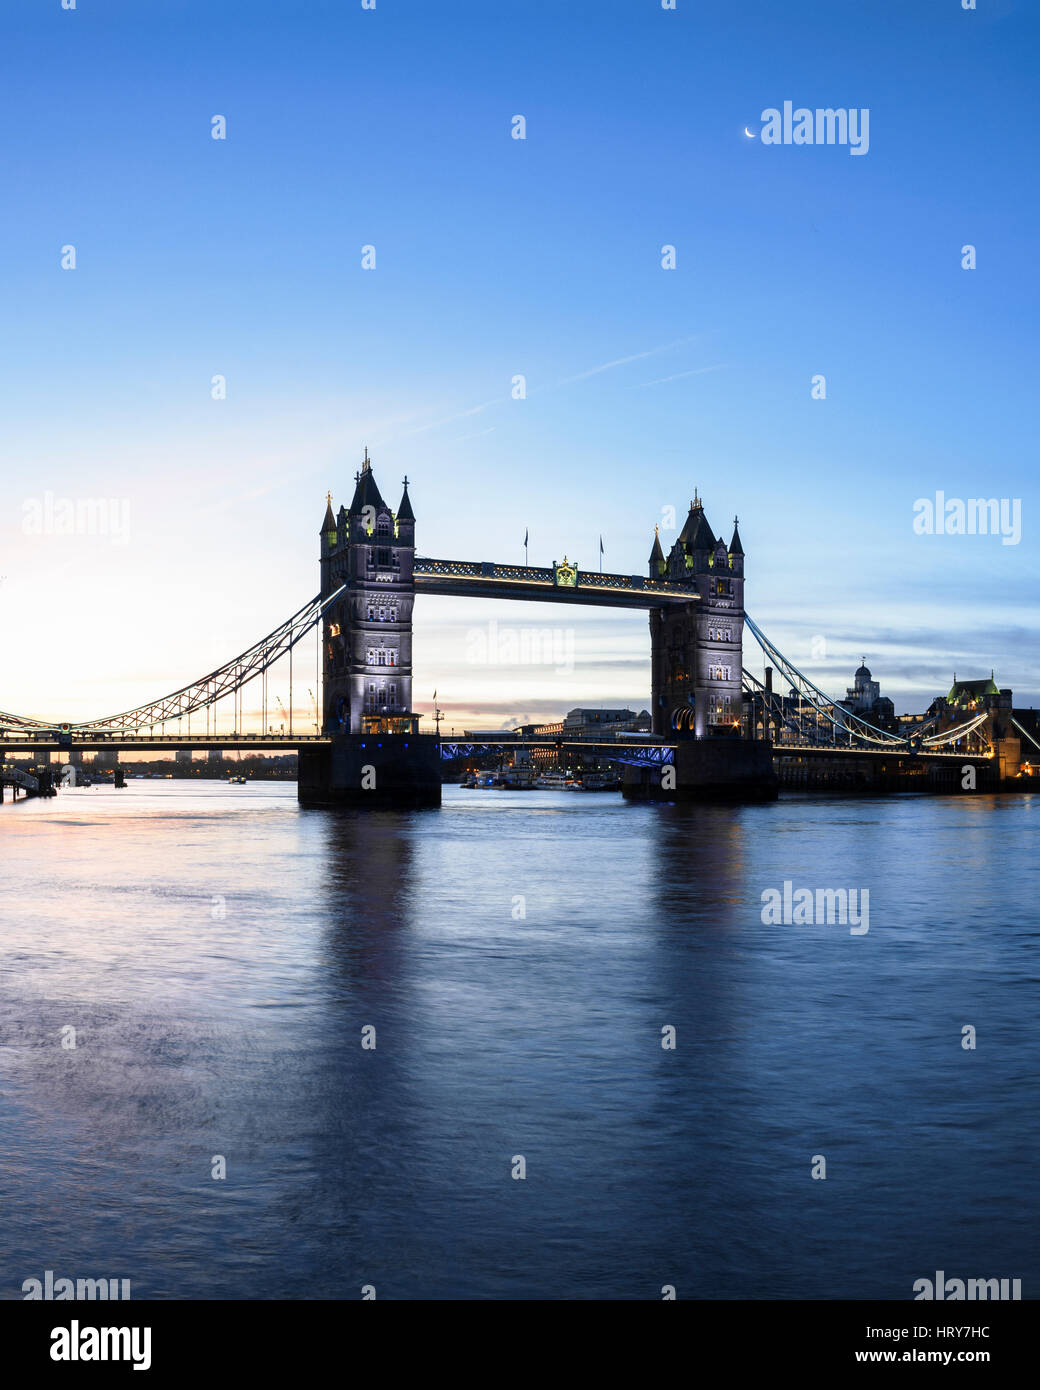 Tower Bridge and River Thames illuminated at twilight, London, UK - Stock Image